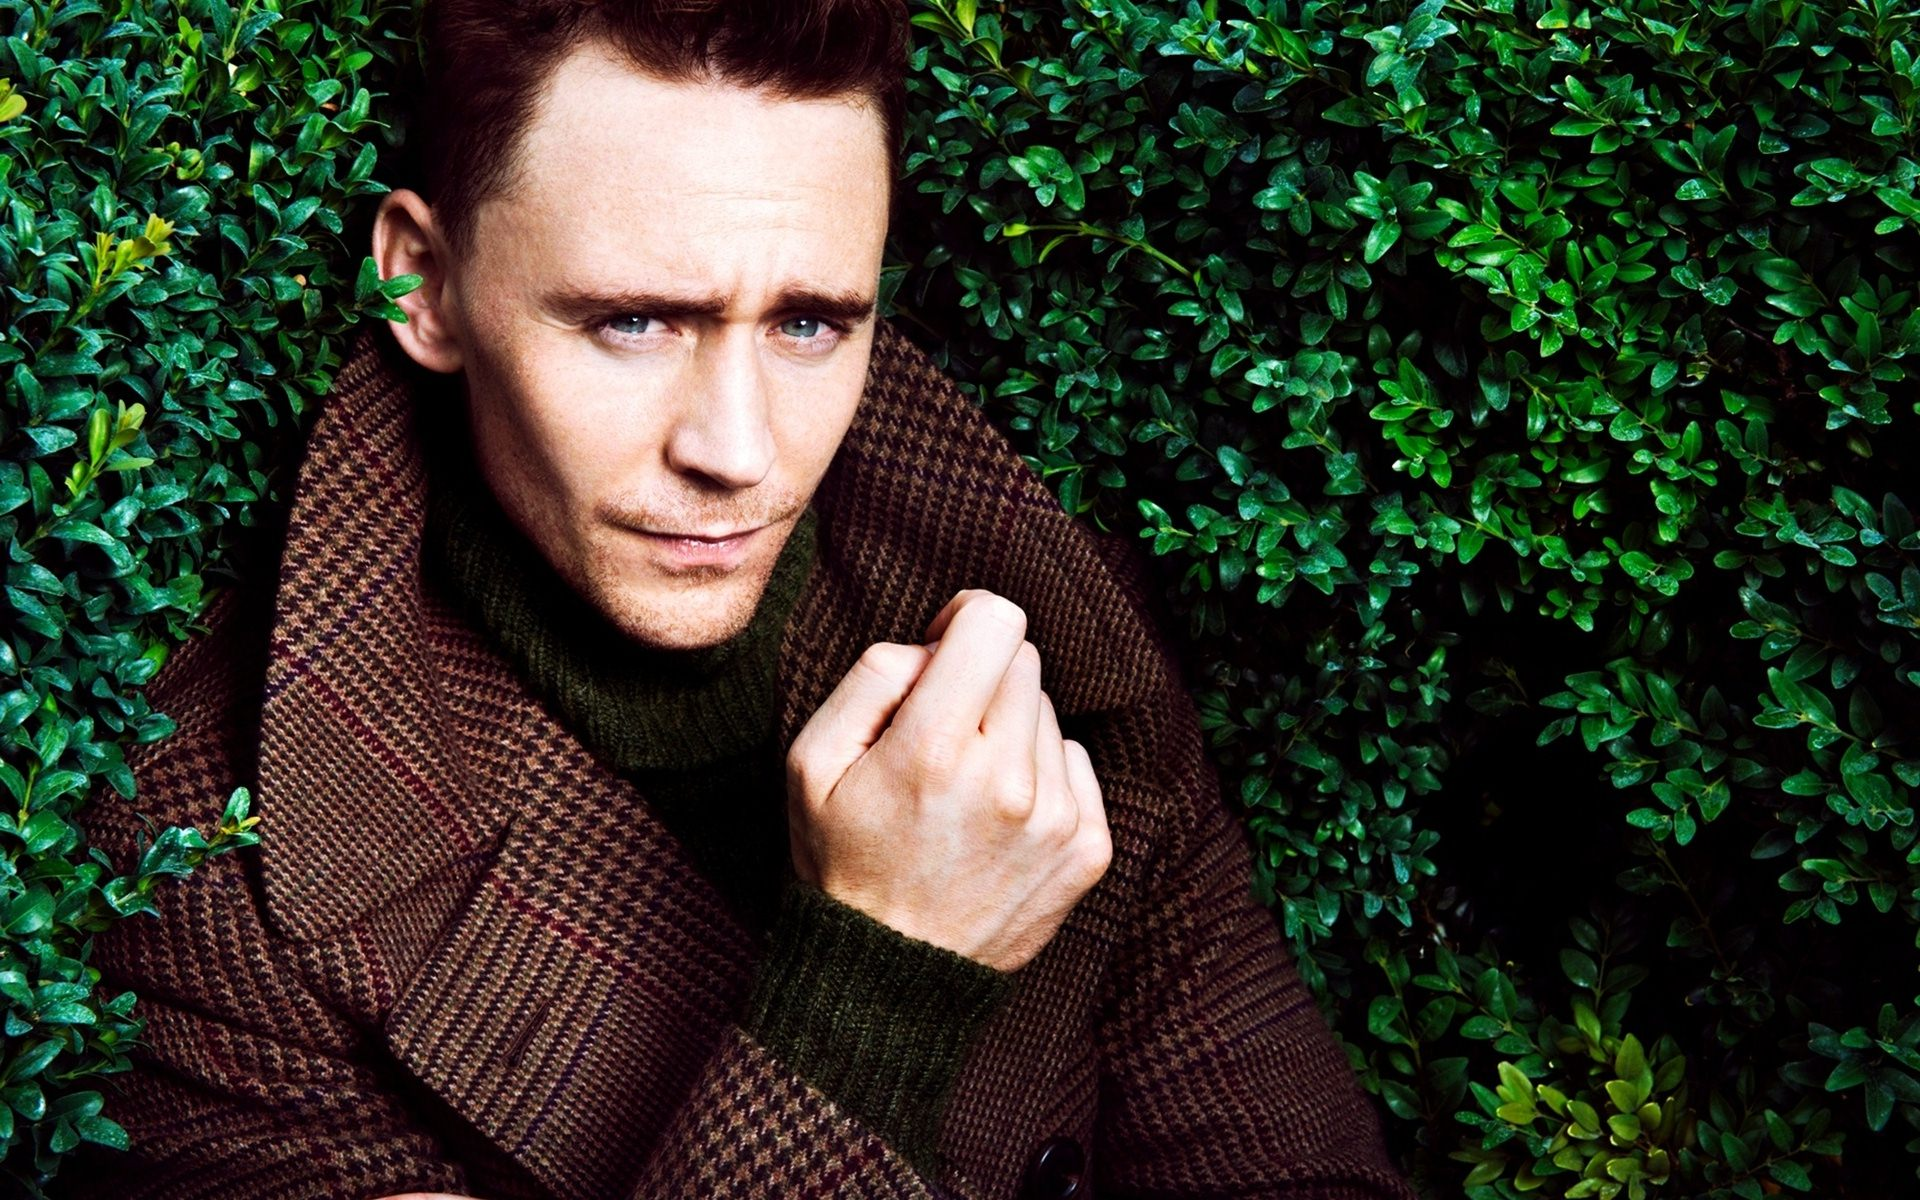 Tom Hiddleston Wallpaper Hd Tom hiddleston 1920x1200